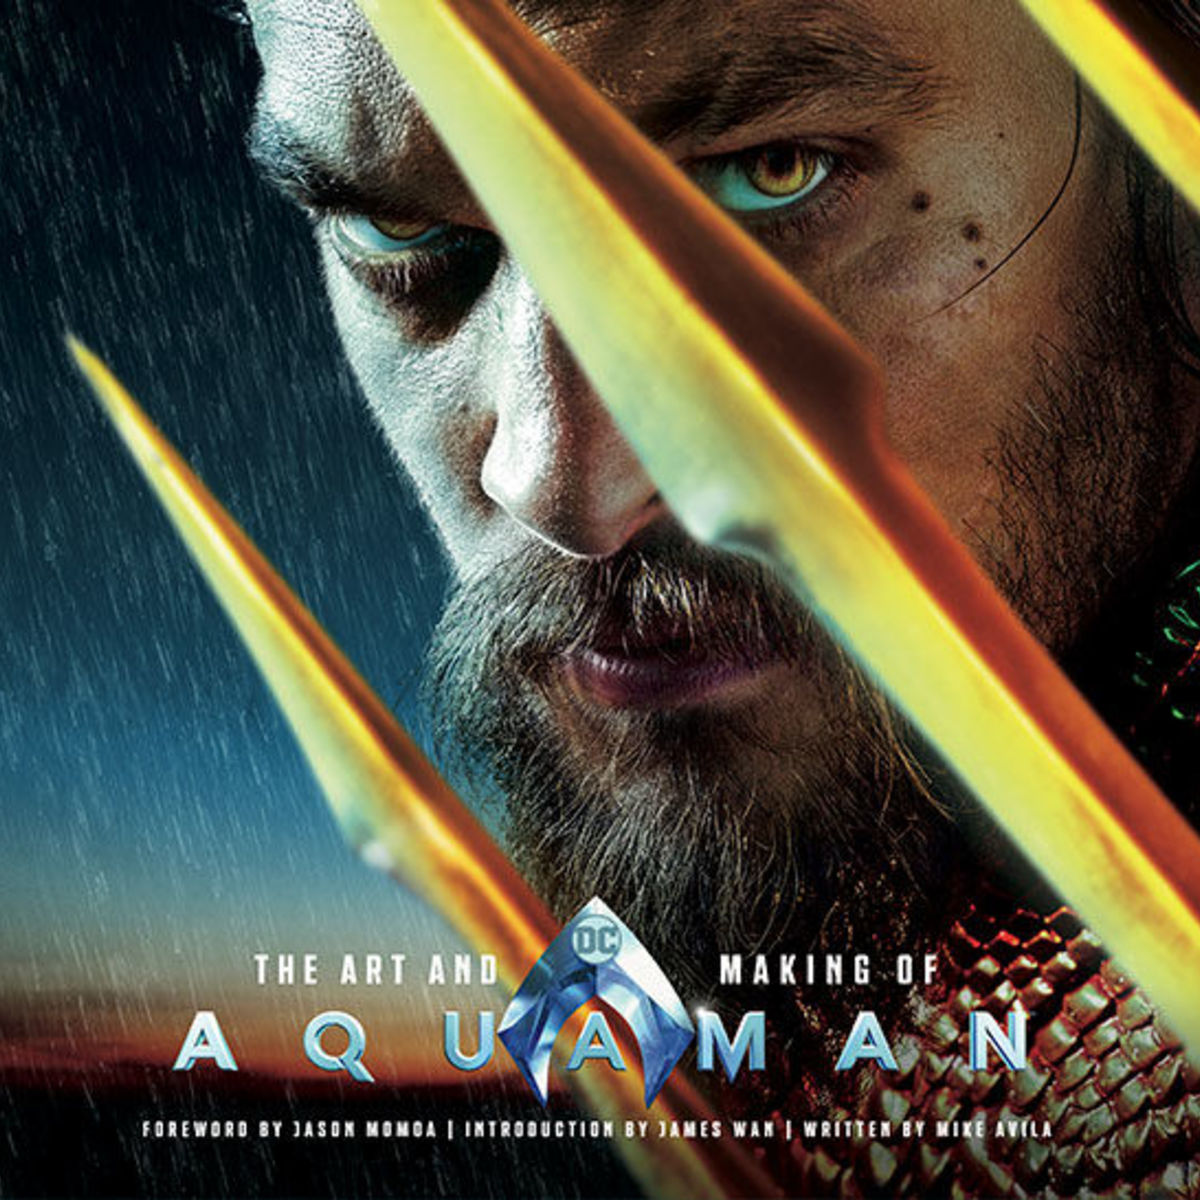 The Art and Making of Aquaman front cover